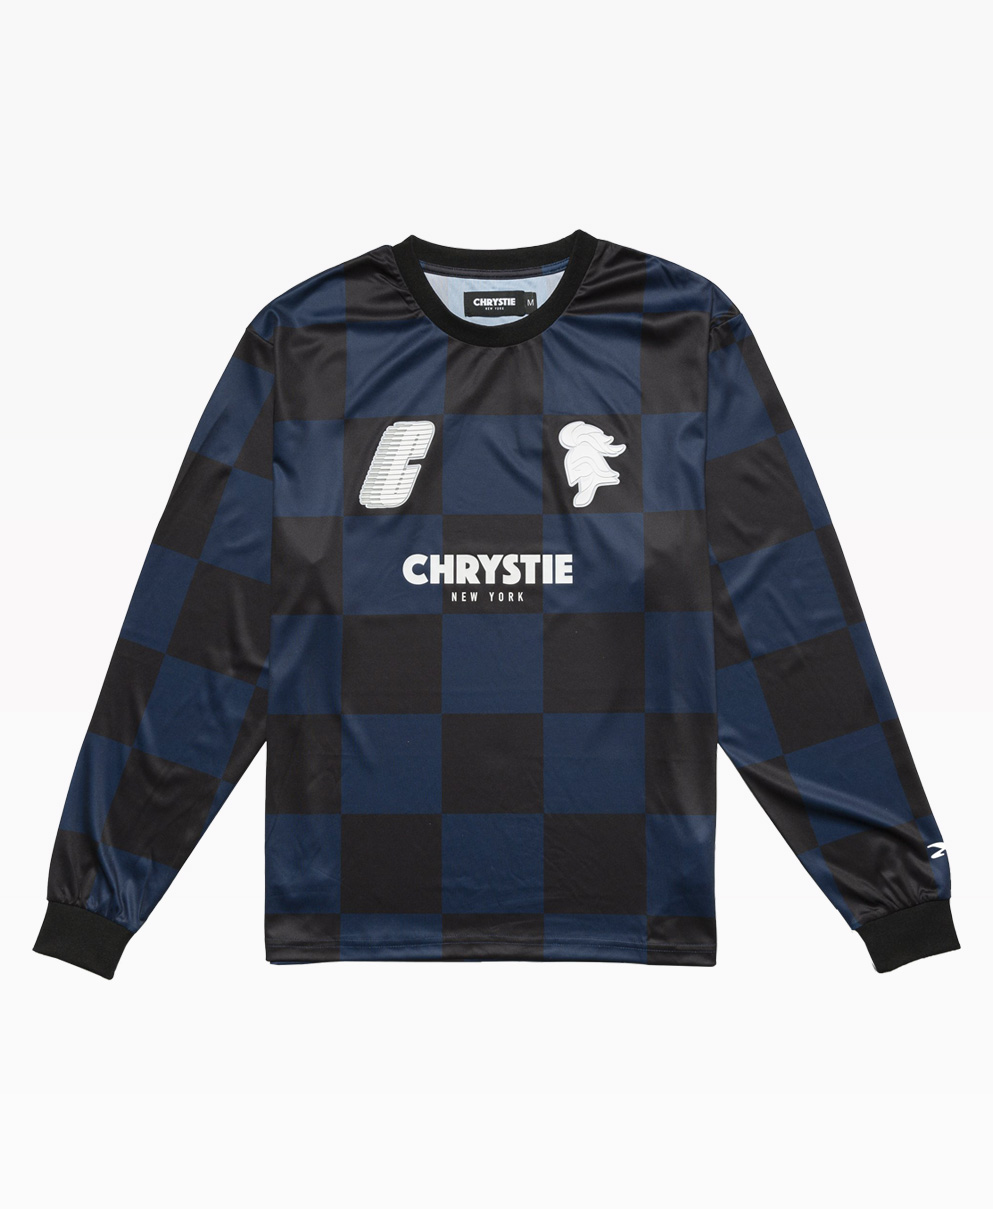 Chrystie Swfc 10th Anniversary Soccer Jersey : Away Color Front